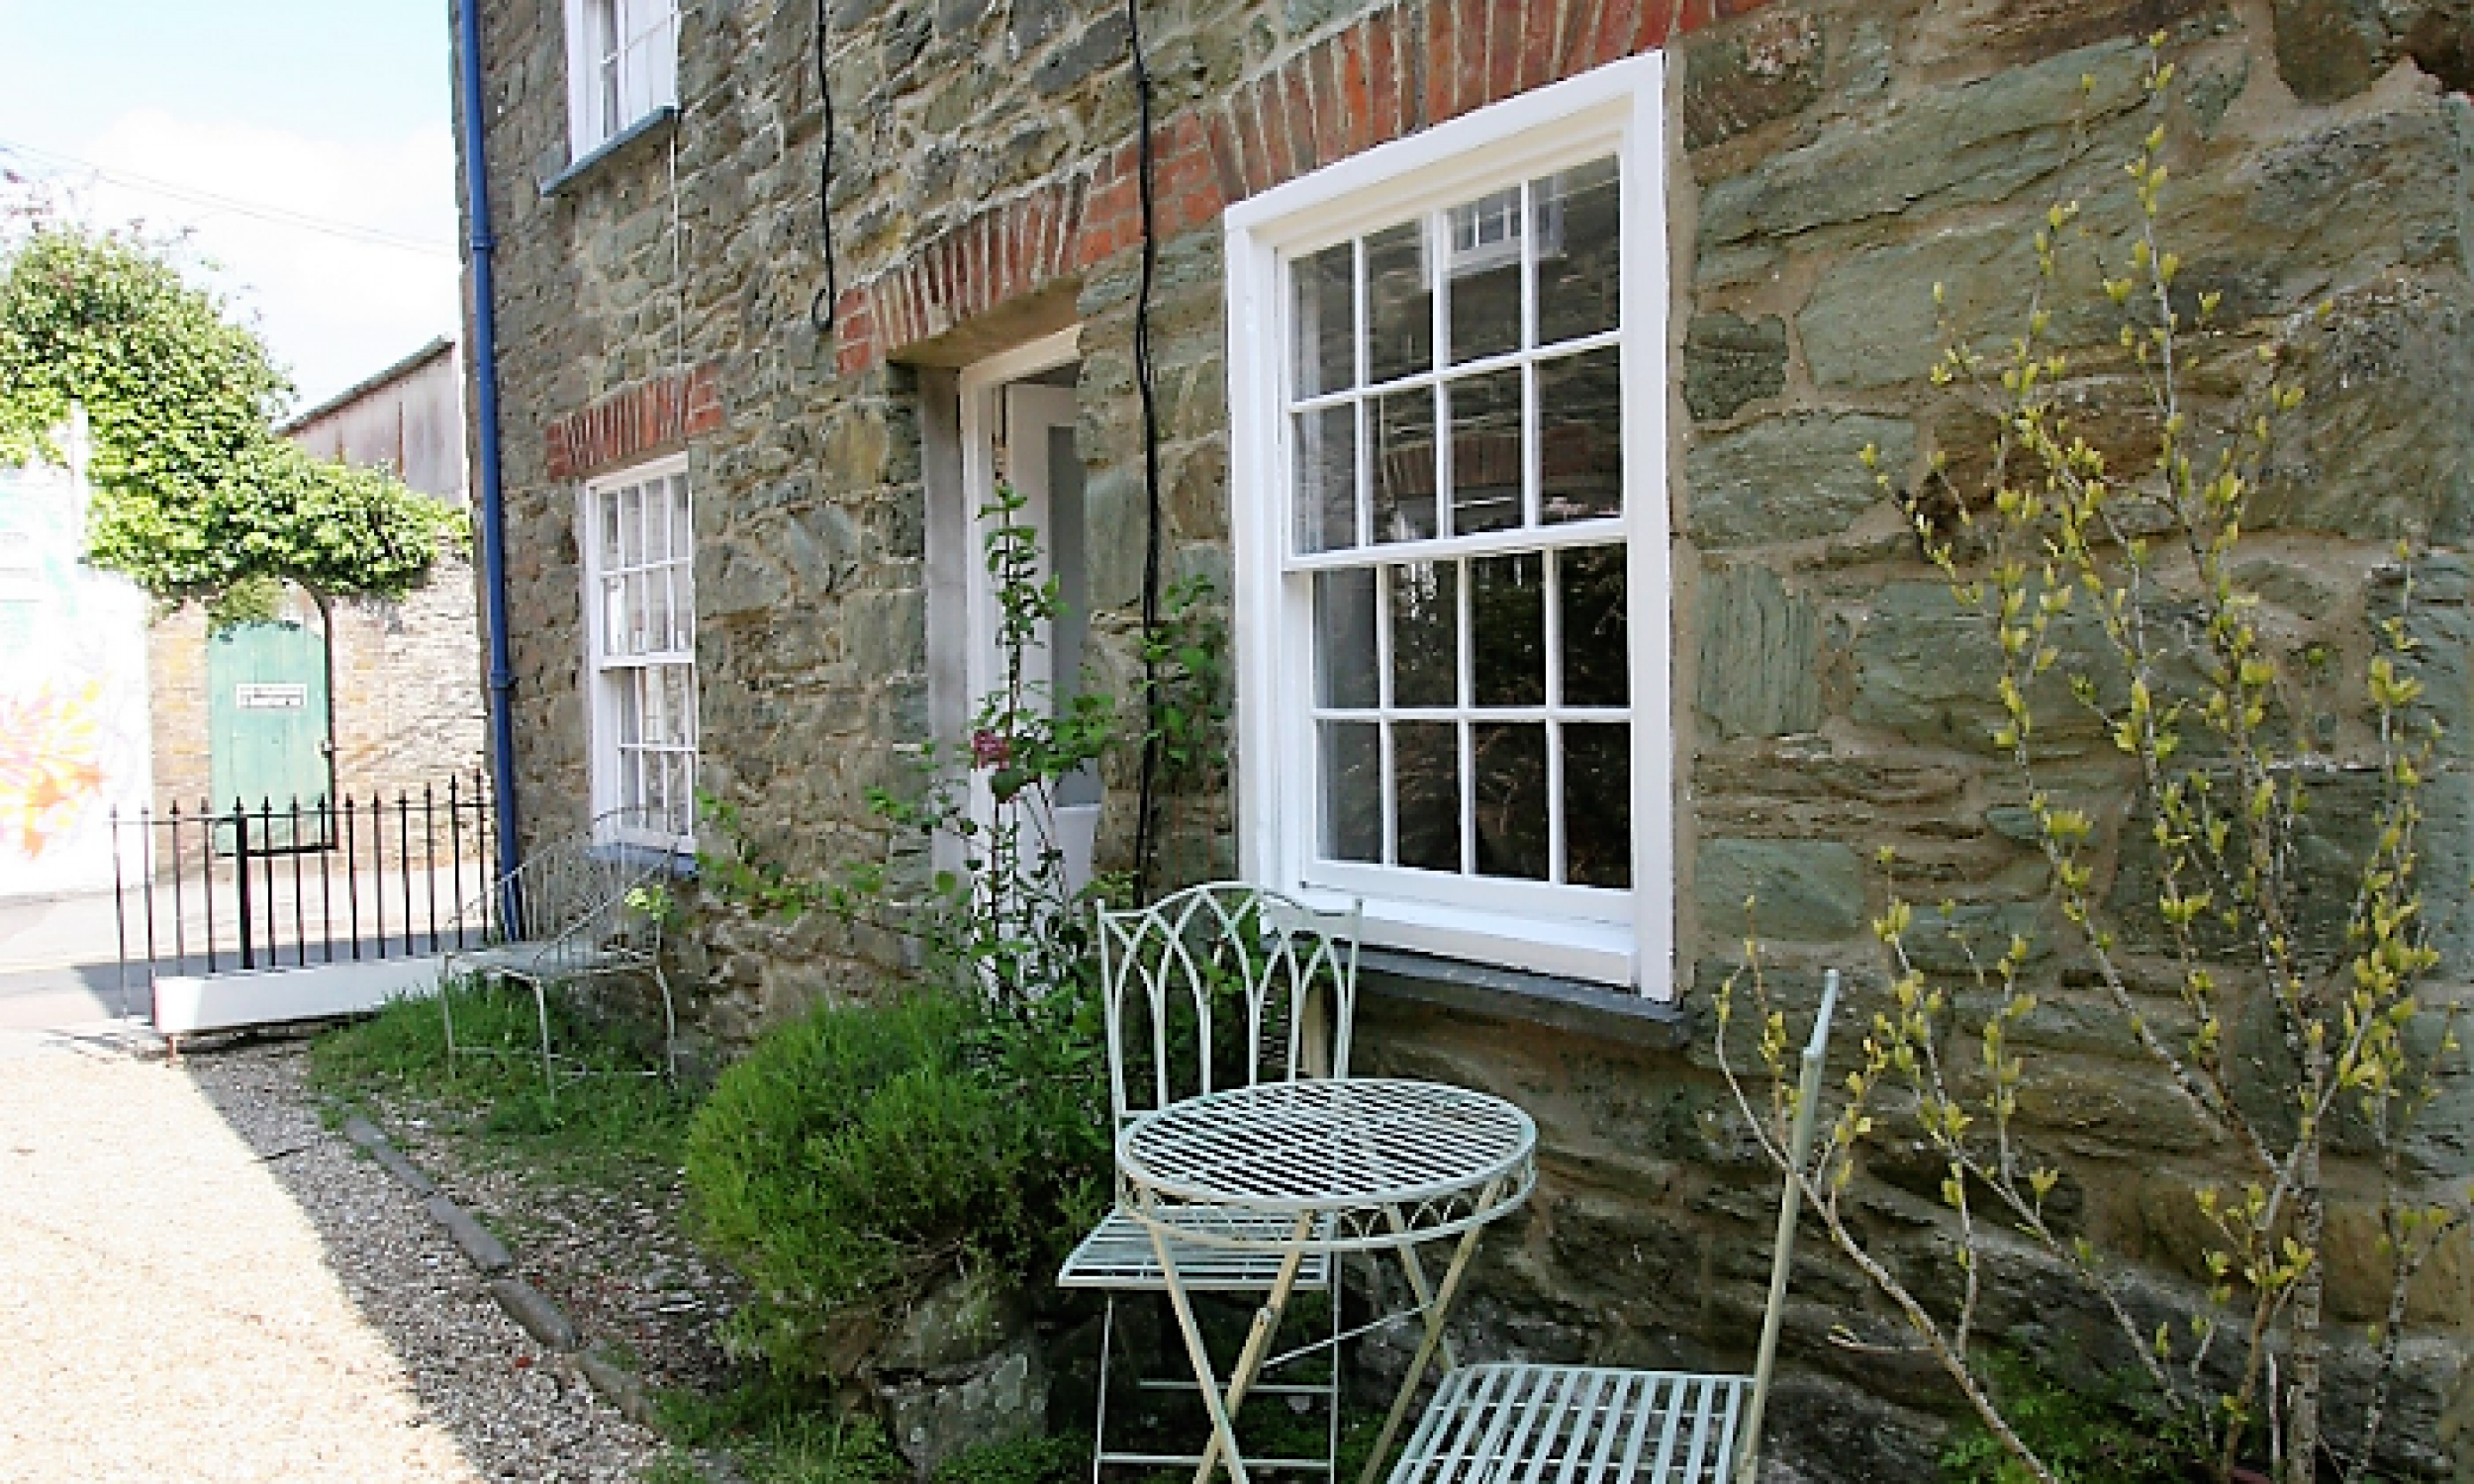 2 bedroom holiday cottage, Salcombe